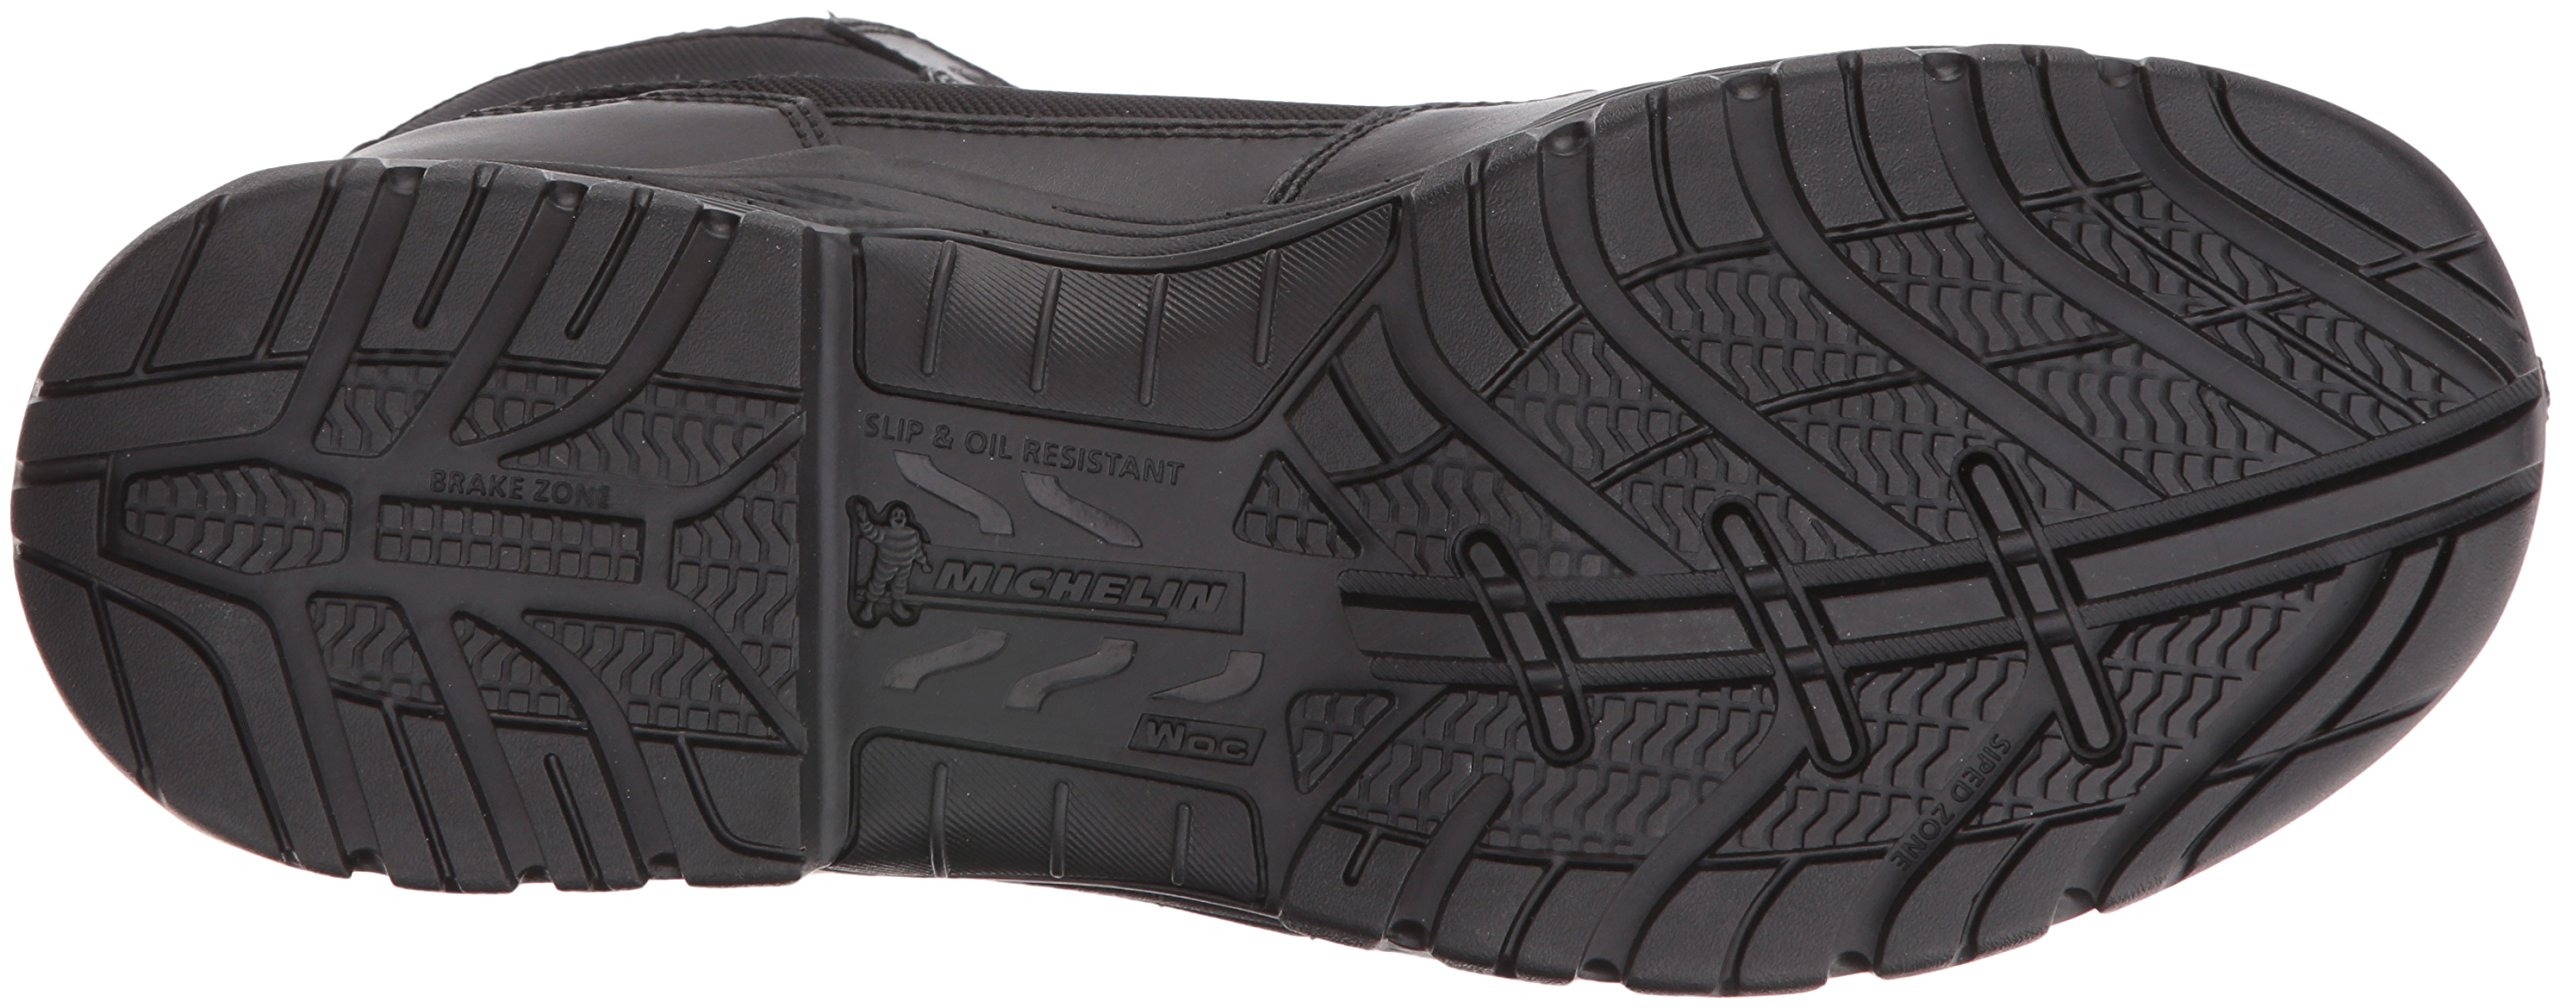 Magnum Men's Strike Force 6'' Waterproof Military & Tactical Boot, Black 14 W US by Magnum (Image #3)